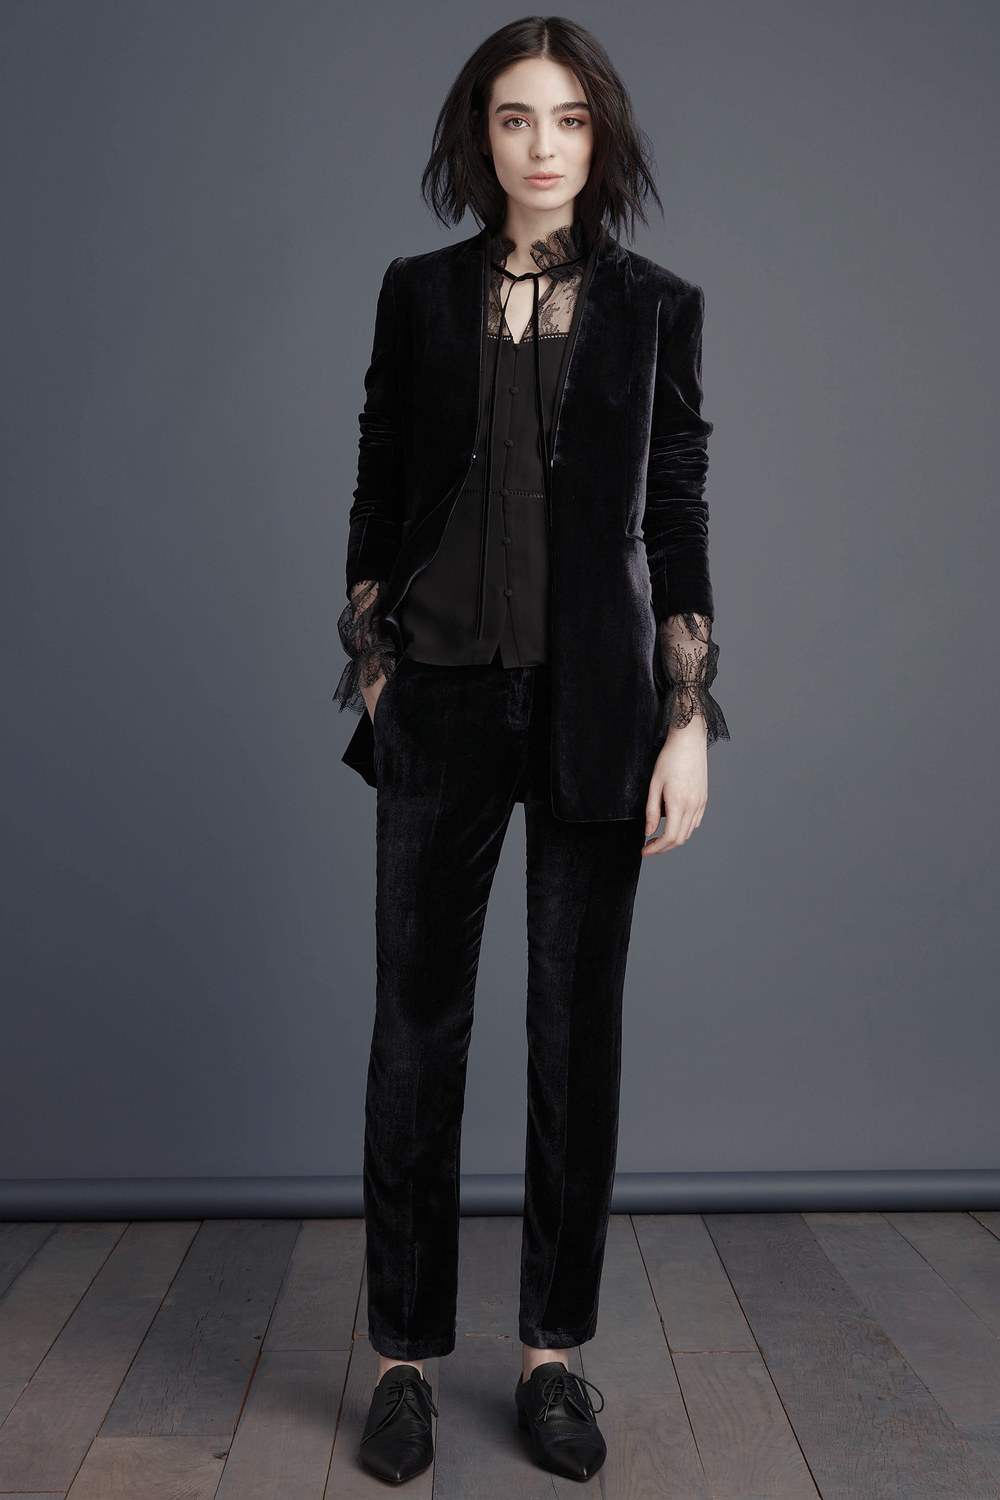 Elie Tahari: Photo Via Vogue